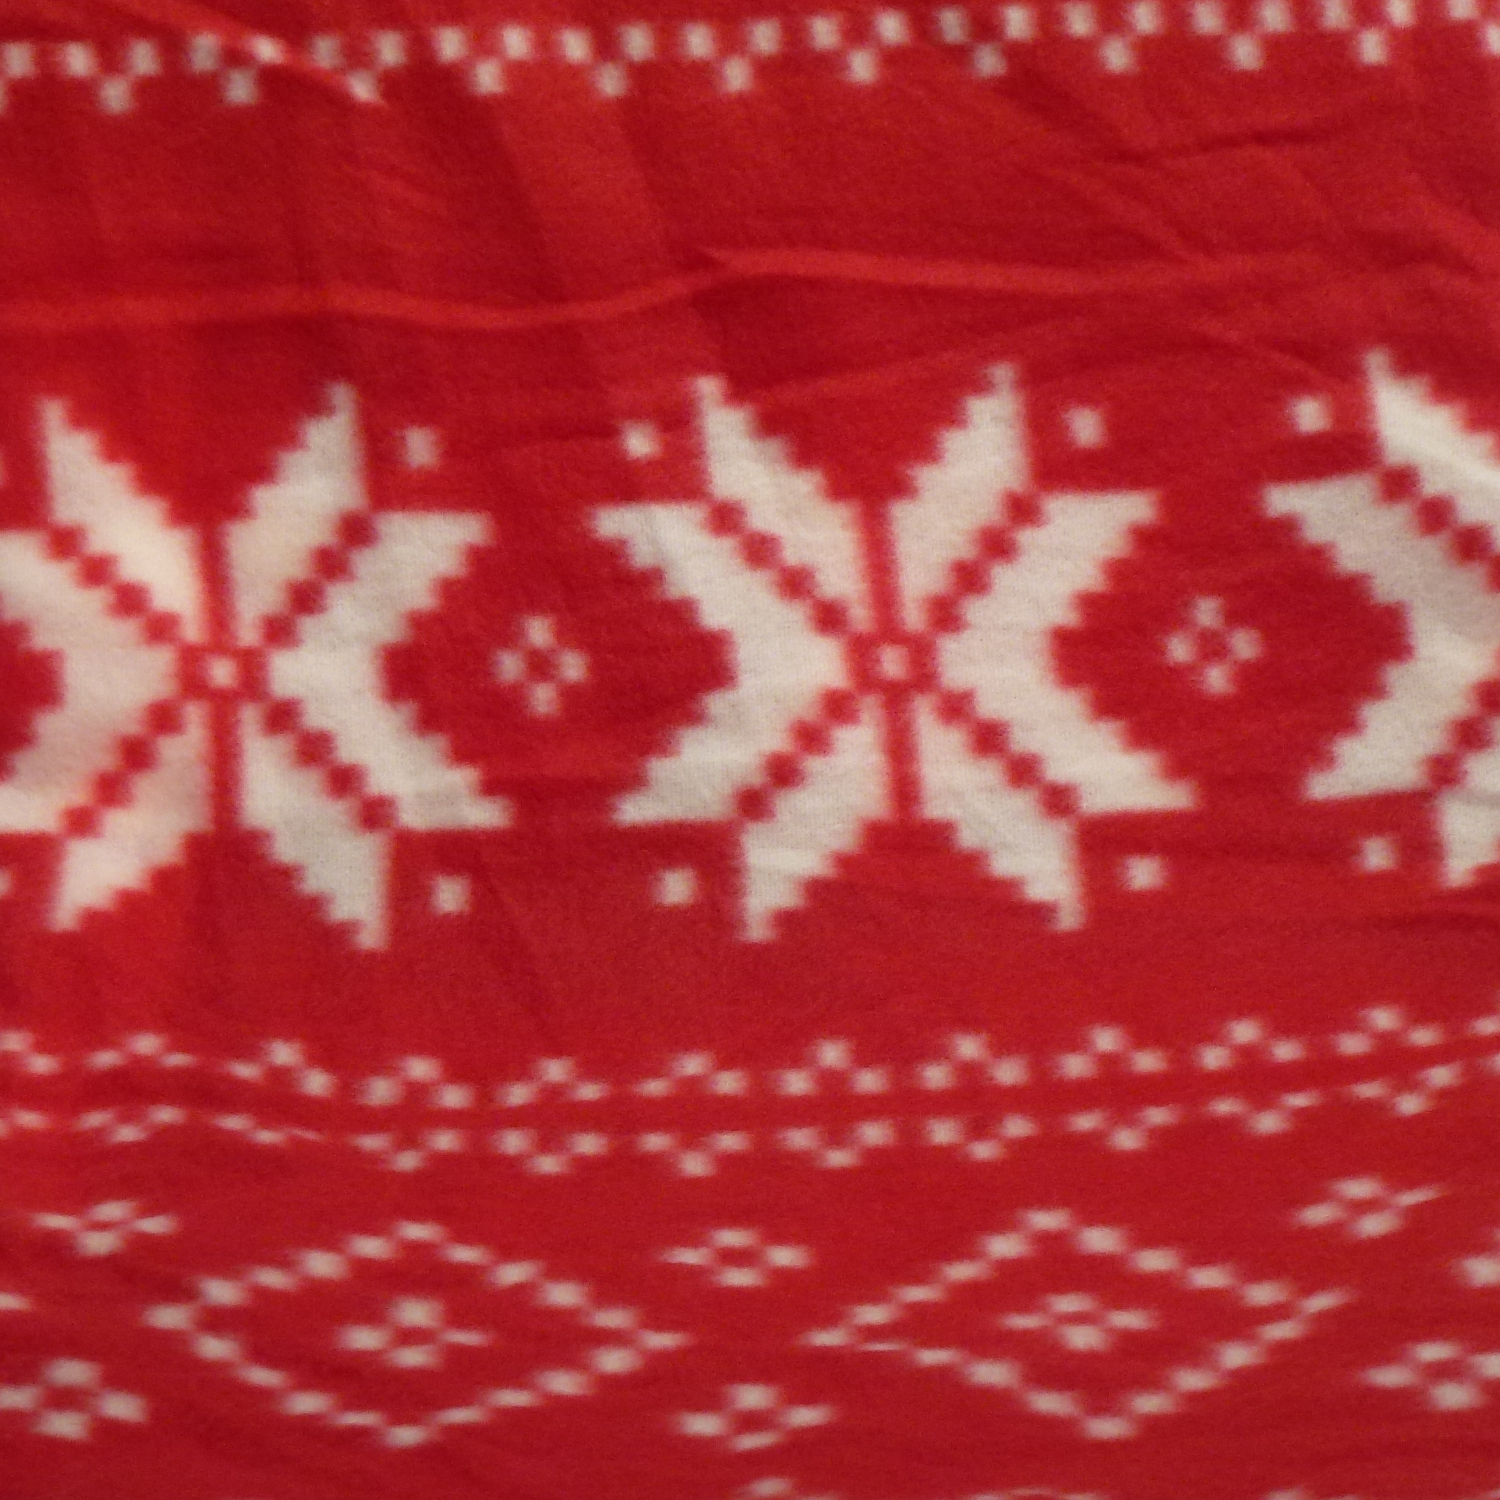 christmas fleece fabric elf on the shelf tossed joann source red snowflake christmas blanket soft polyester polar fleece festive xmas throw